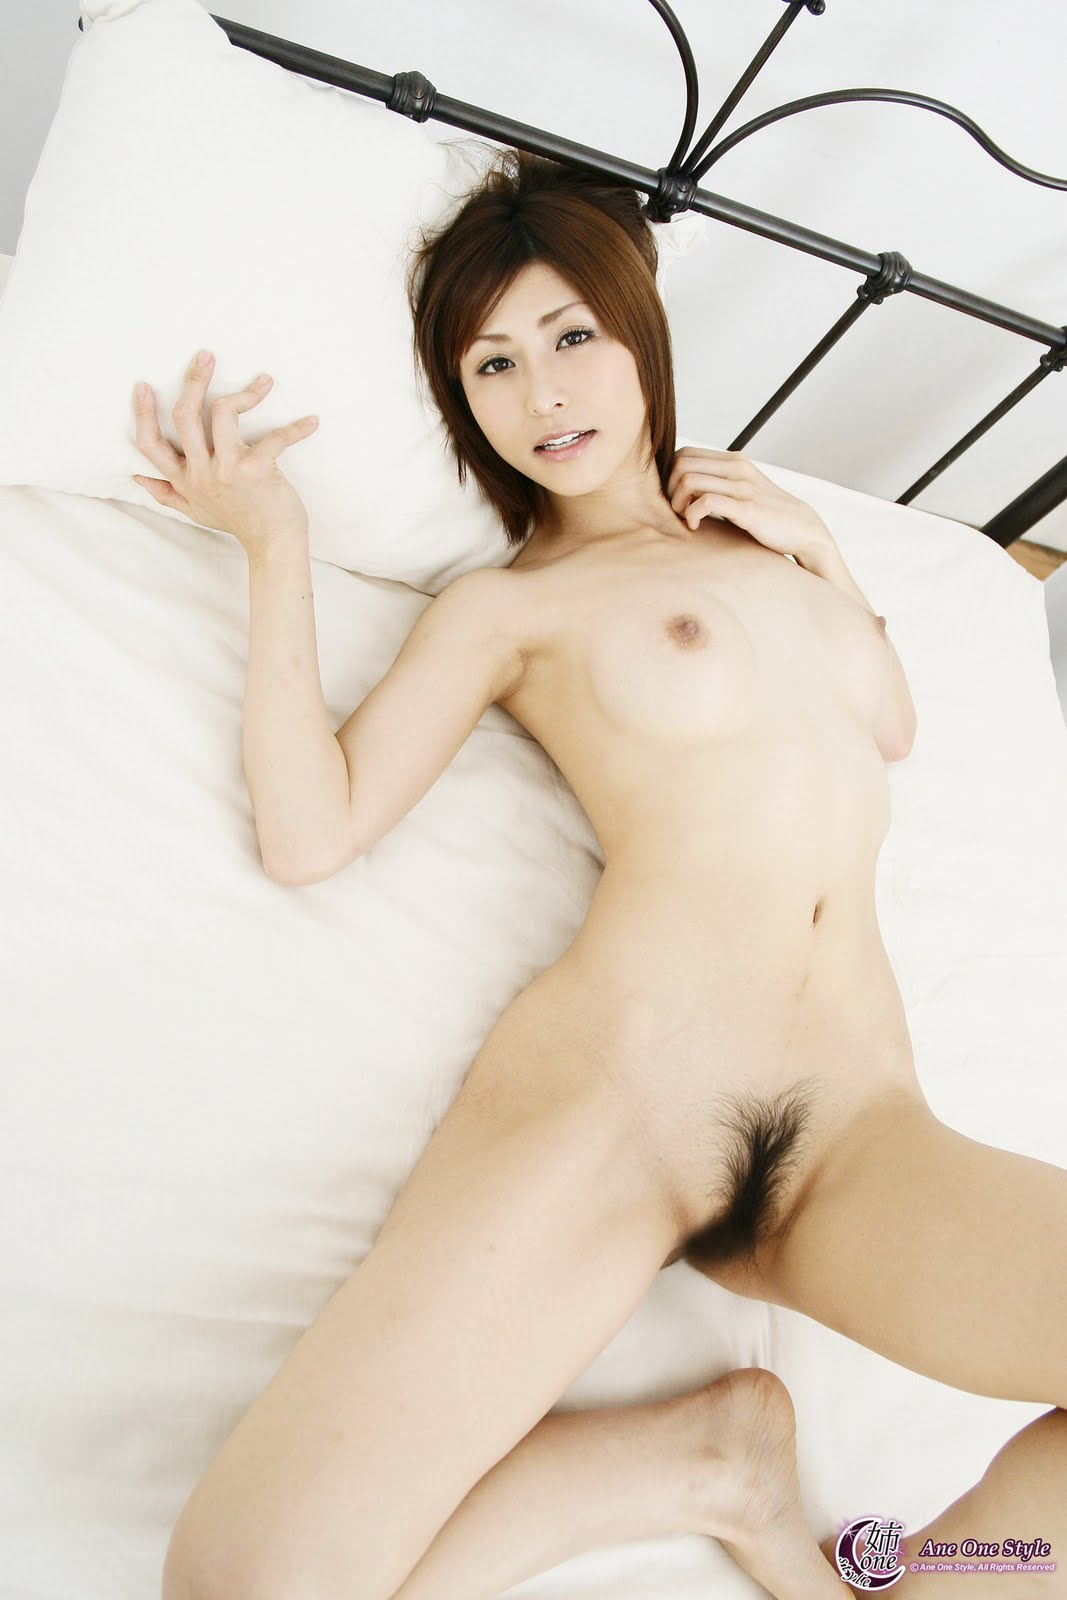 Excellent akari asahina nude agree with